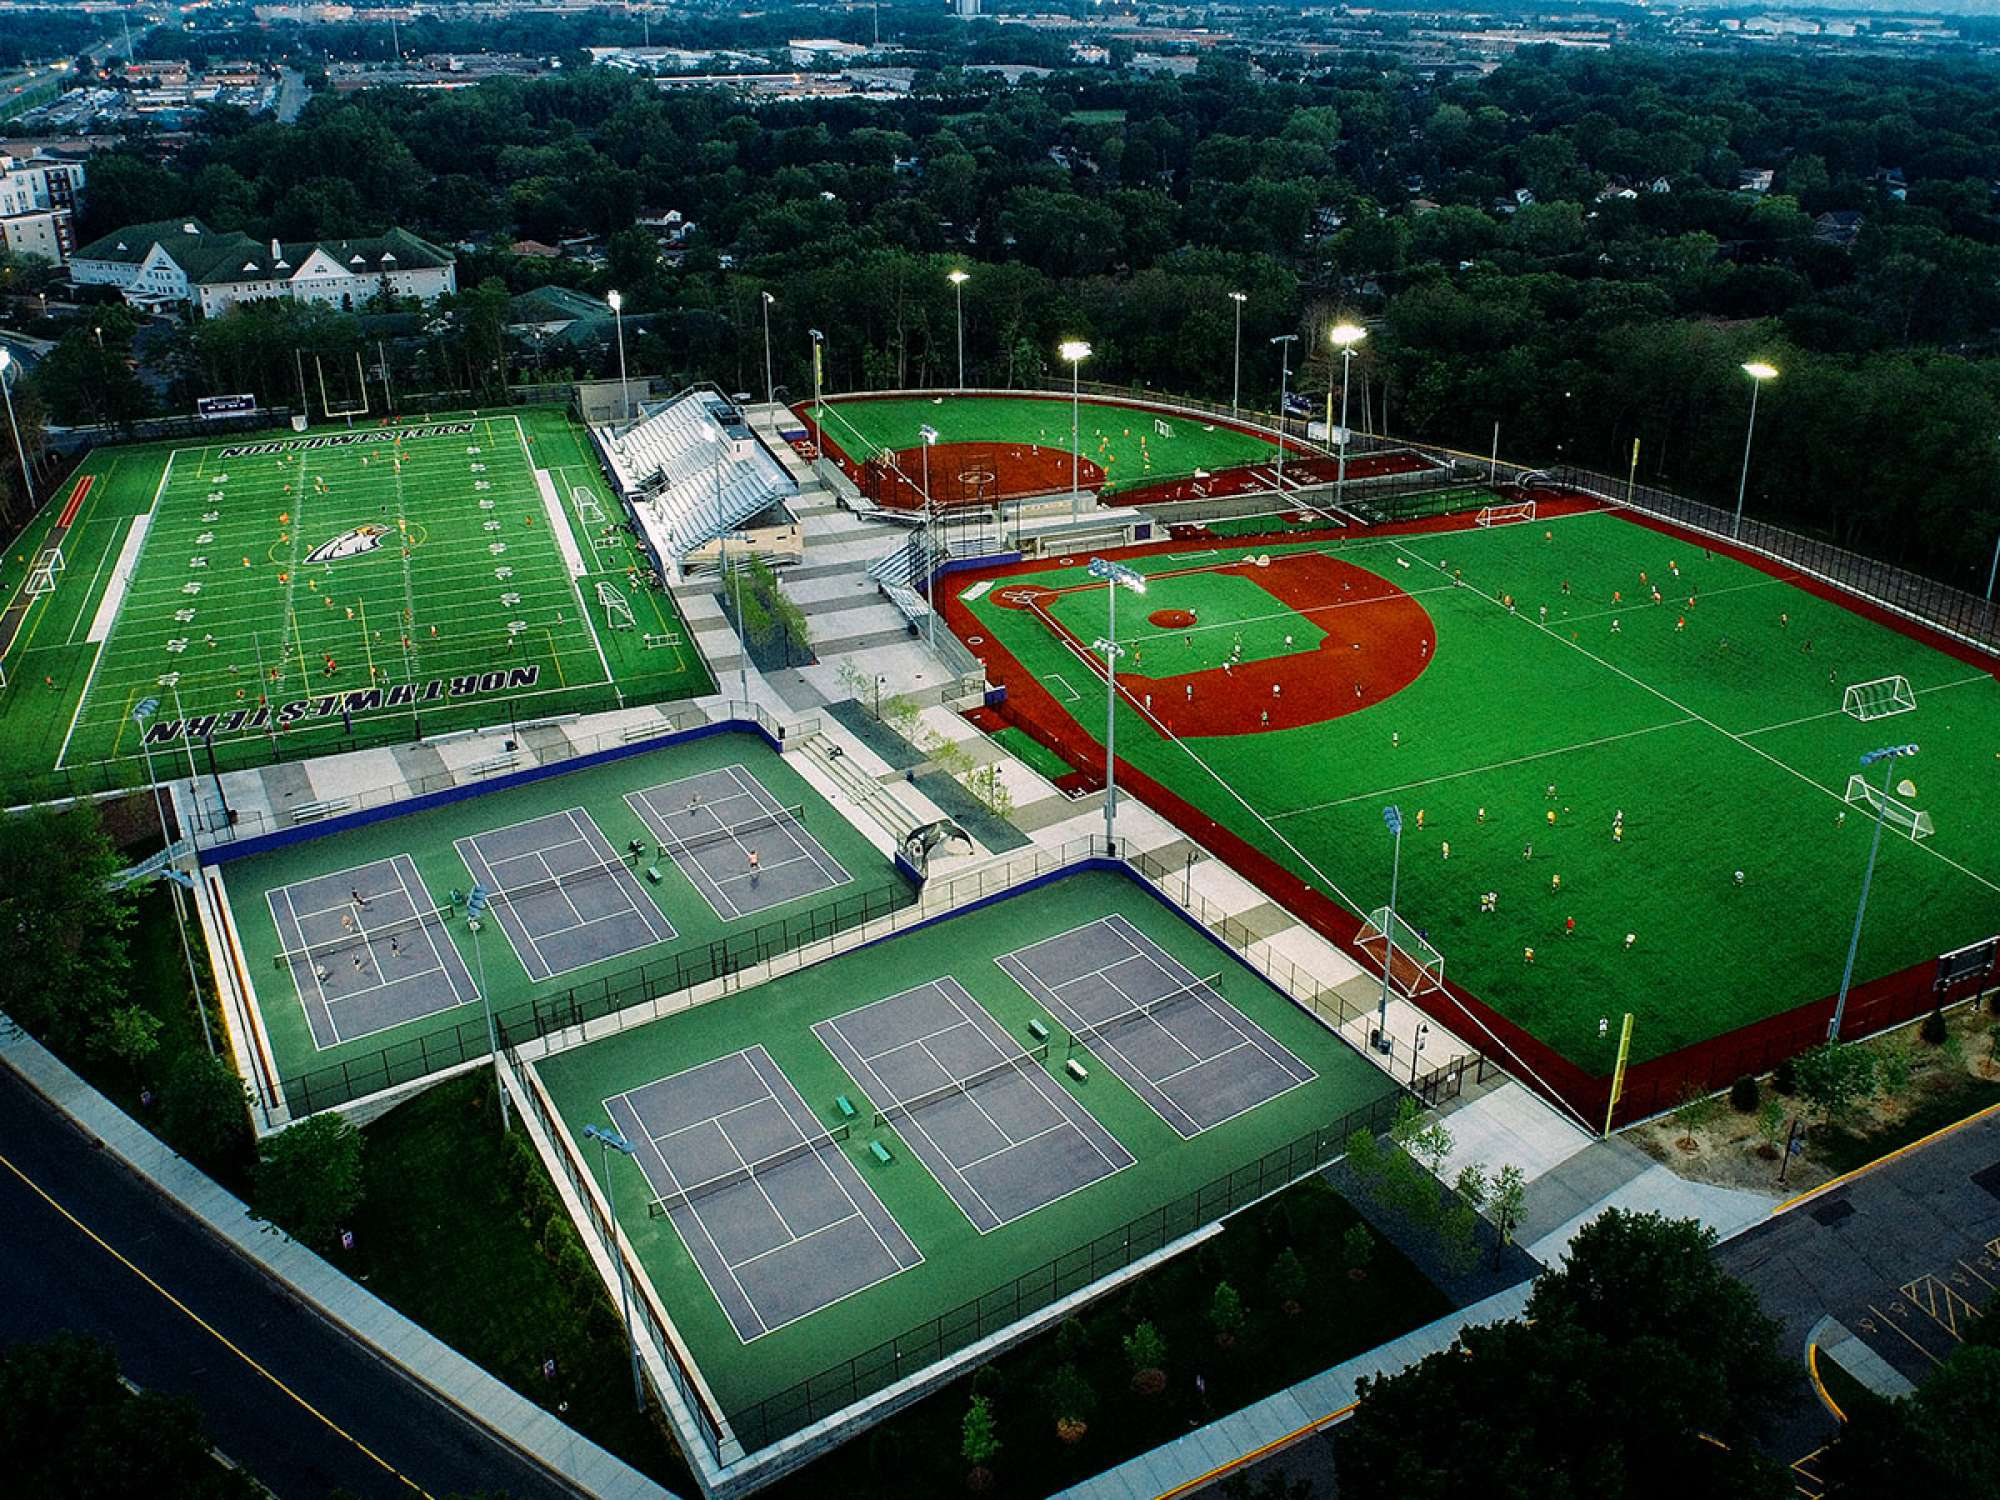 Bird's eye view of the Reynolds Field Complex